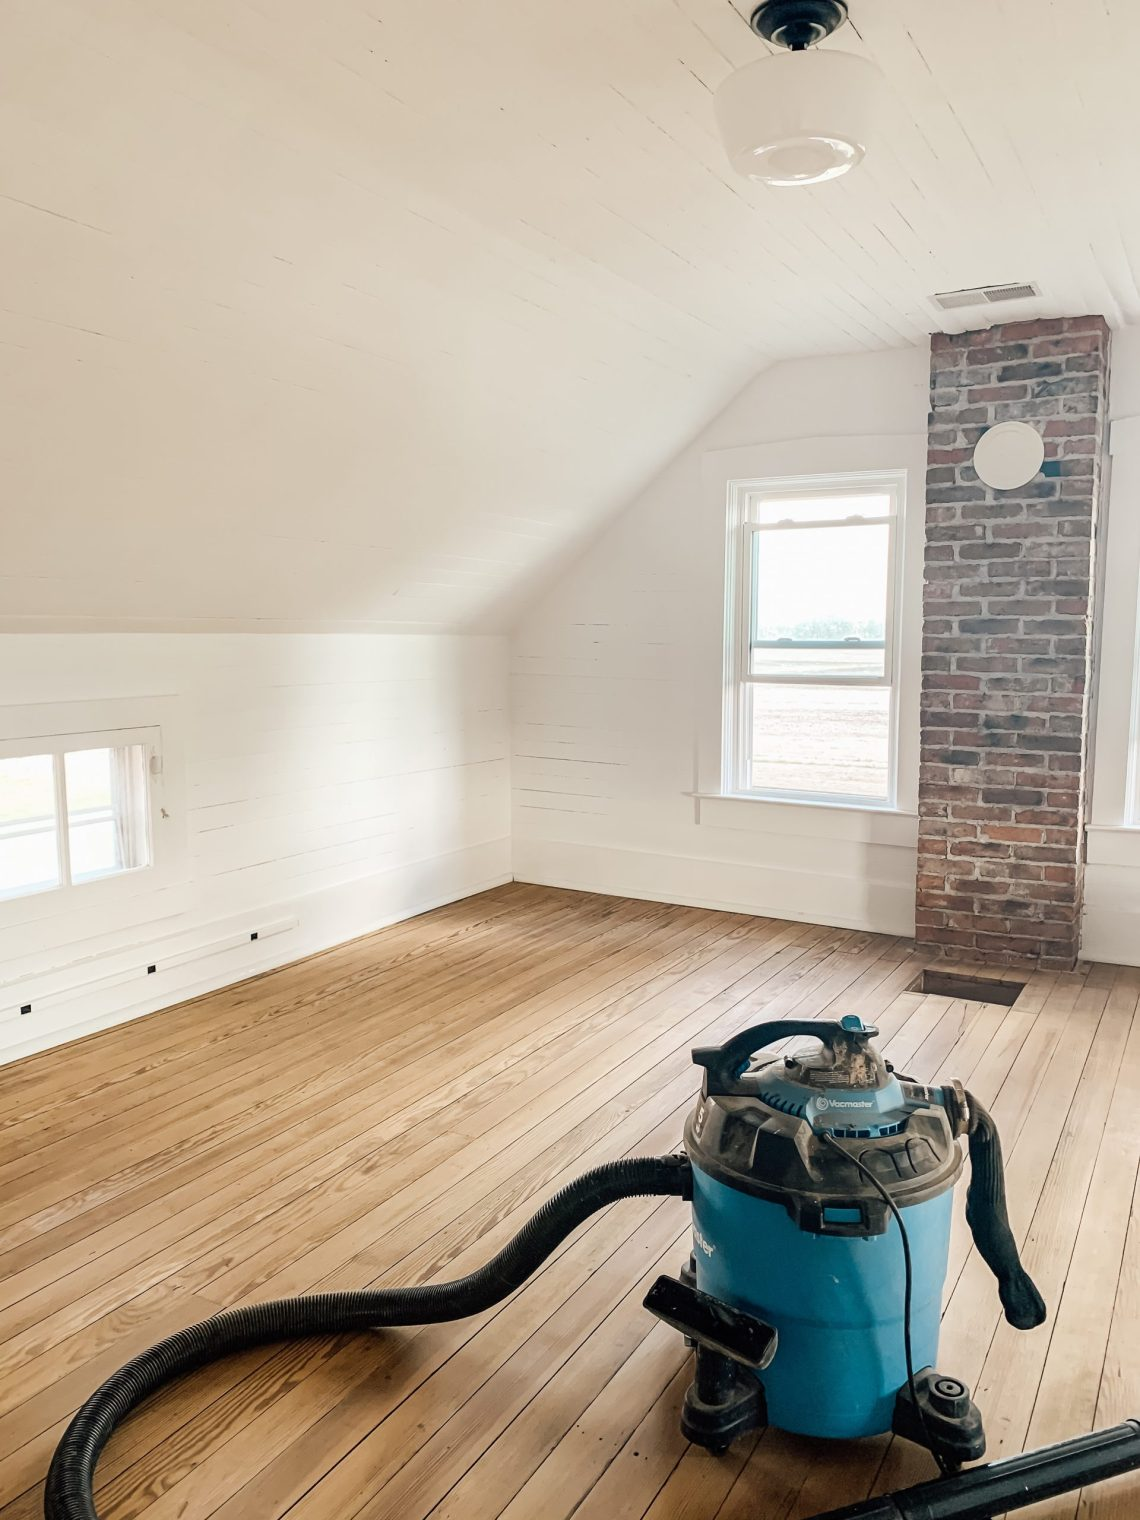 How to Fill Gaps Between Floor and Wall Trim